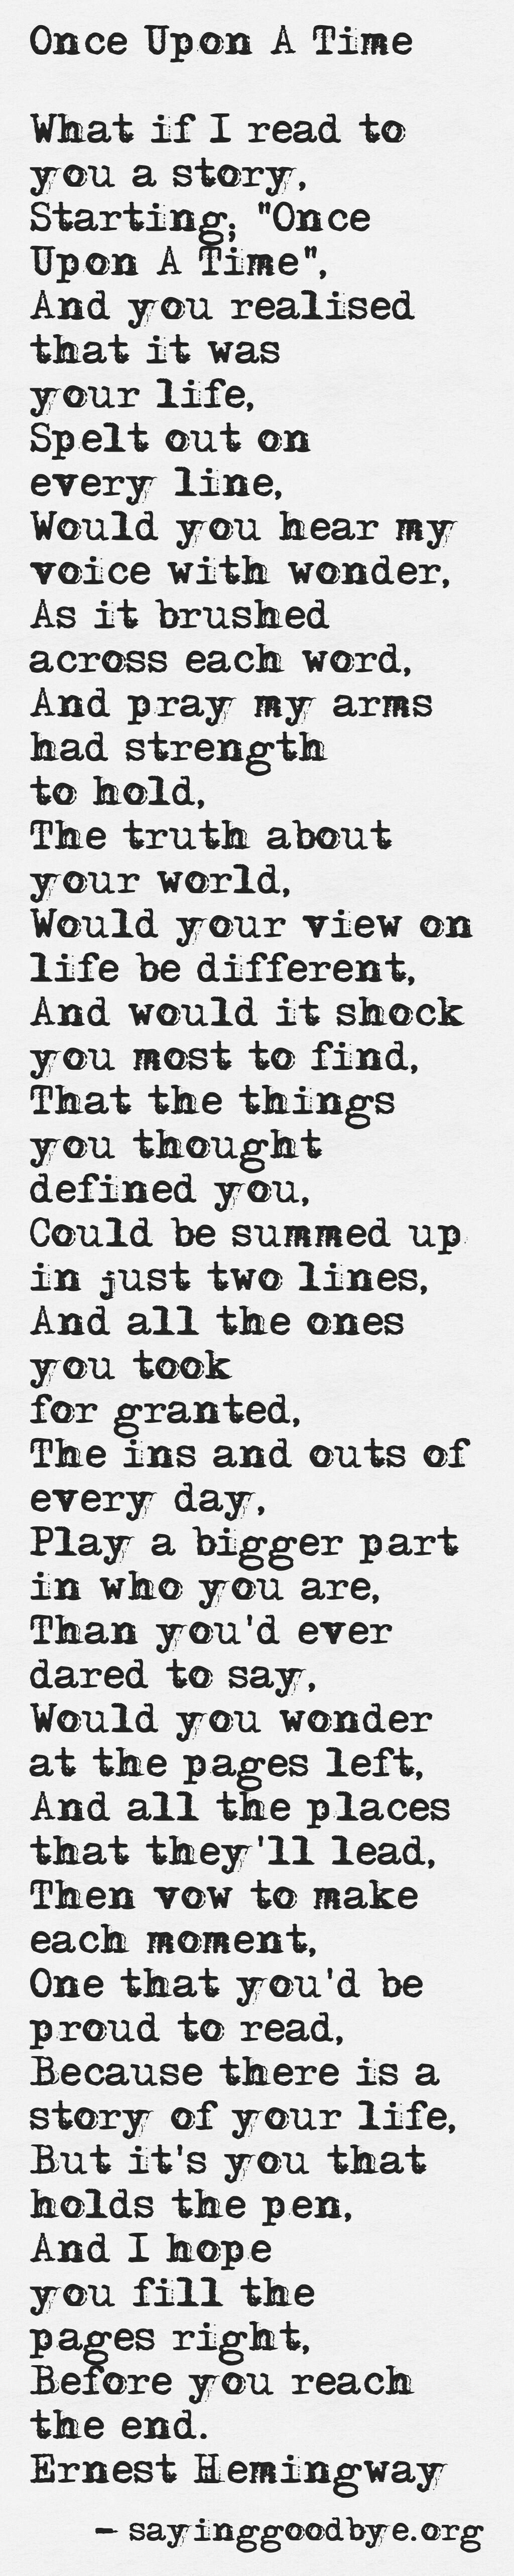 once upon a time poem